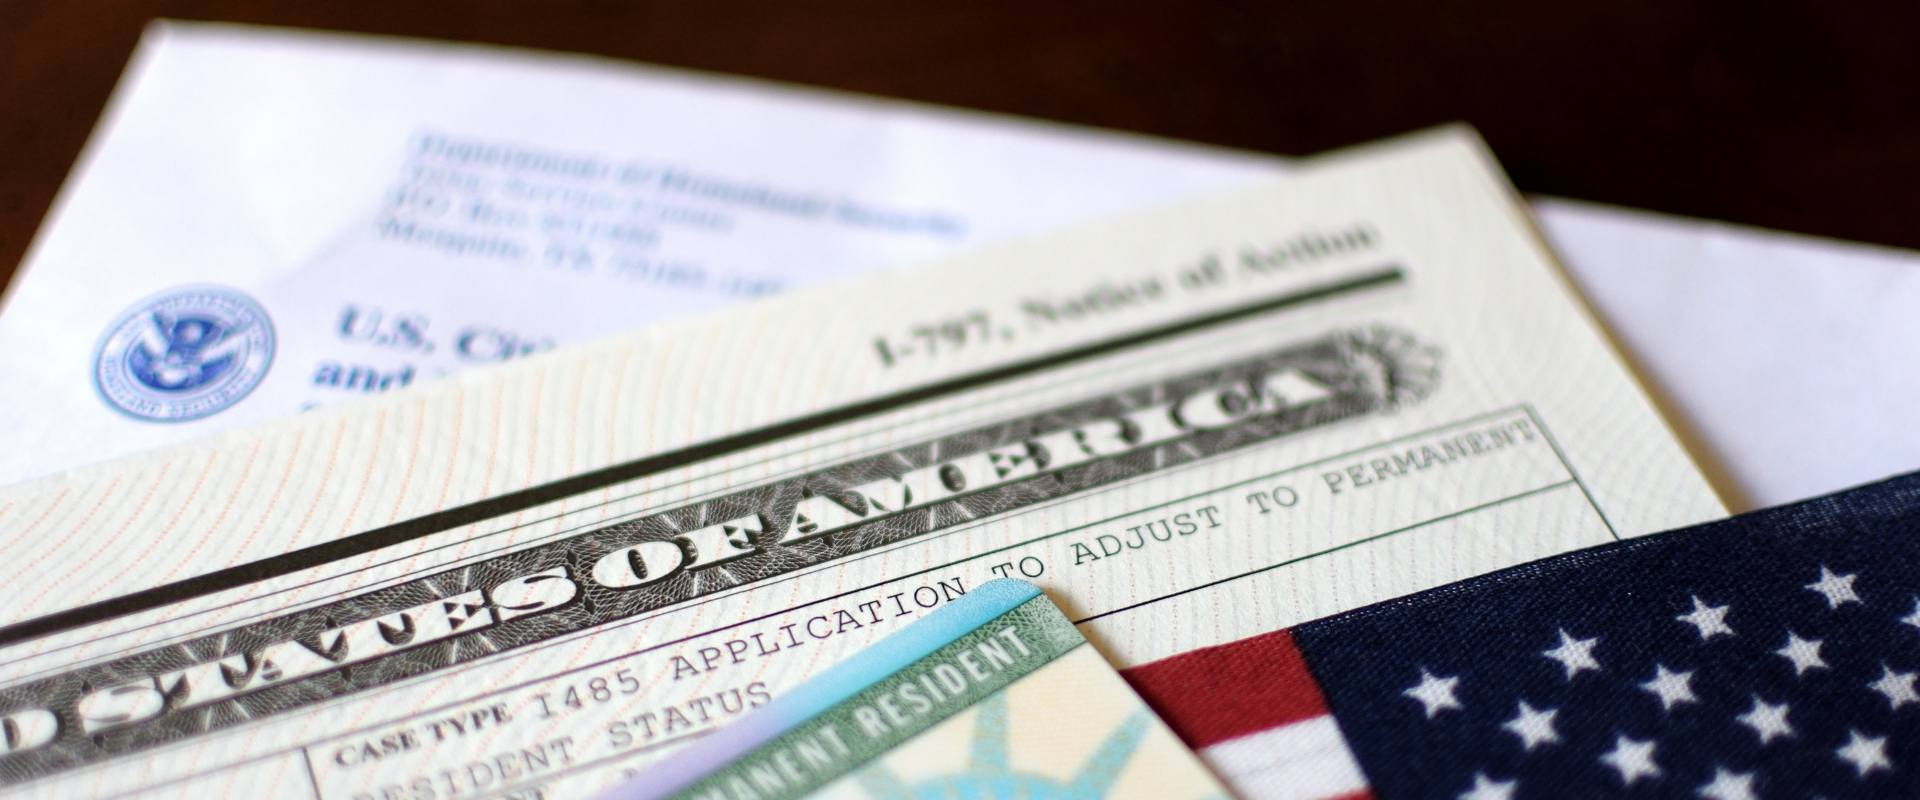 Everything You Need To Know About Form I-9   Aps Payroll